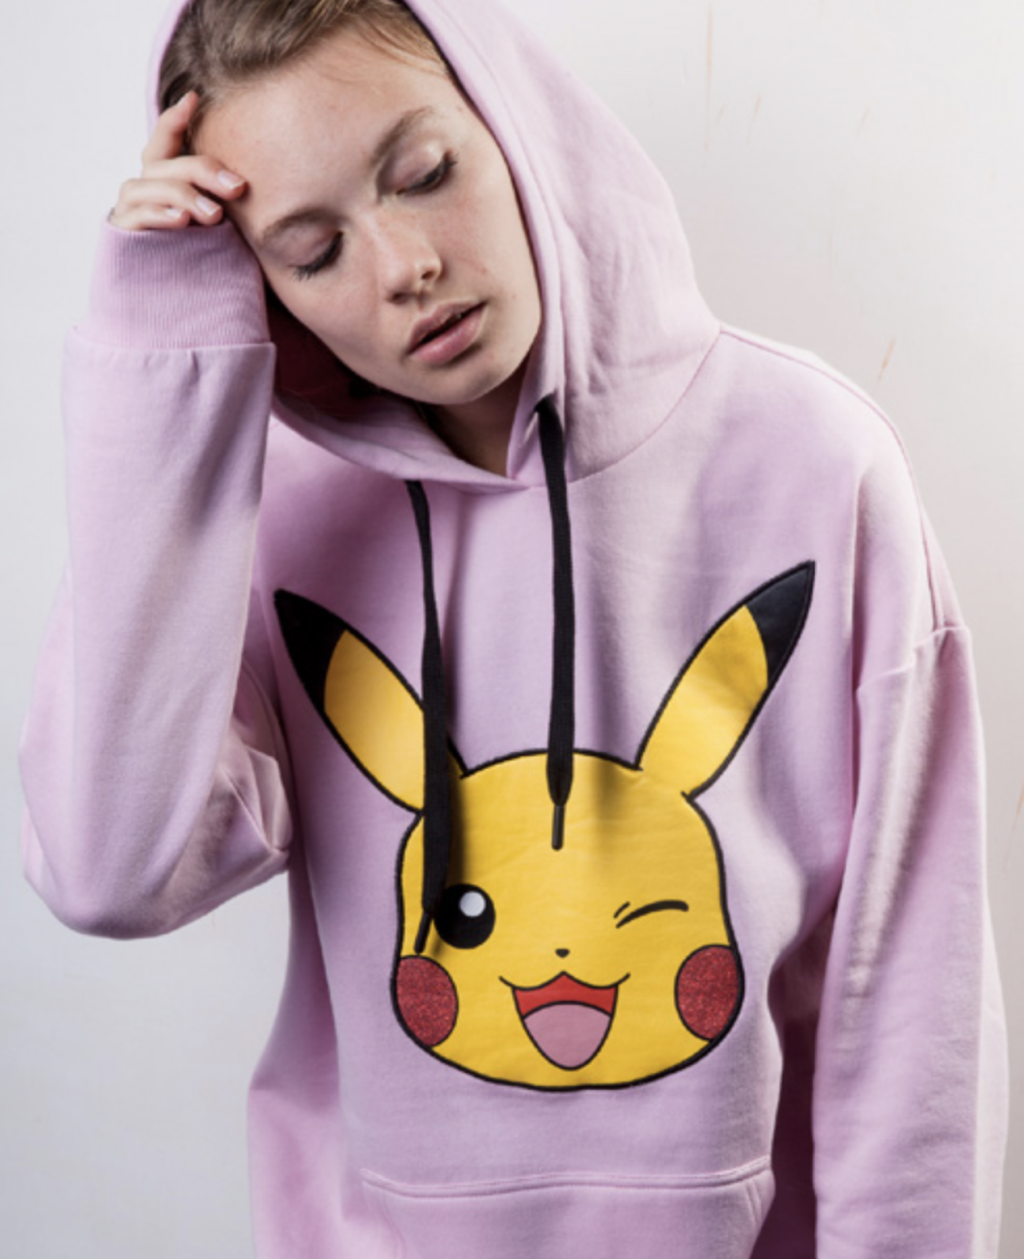 POKEMON - Women's Sweatshirt - Pikachu (M)